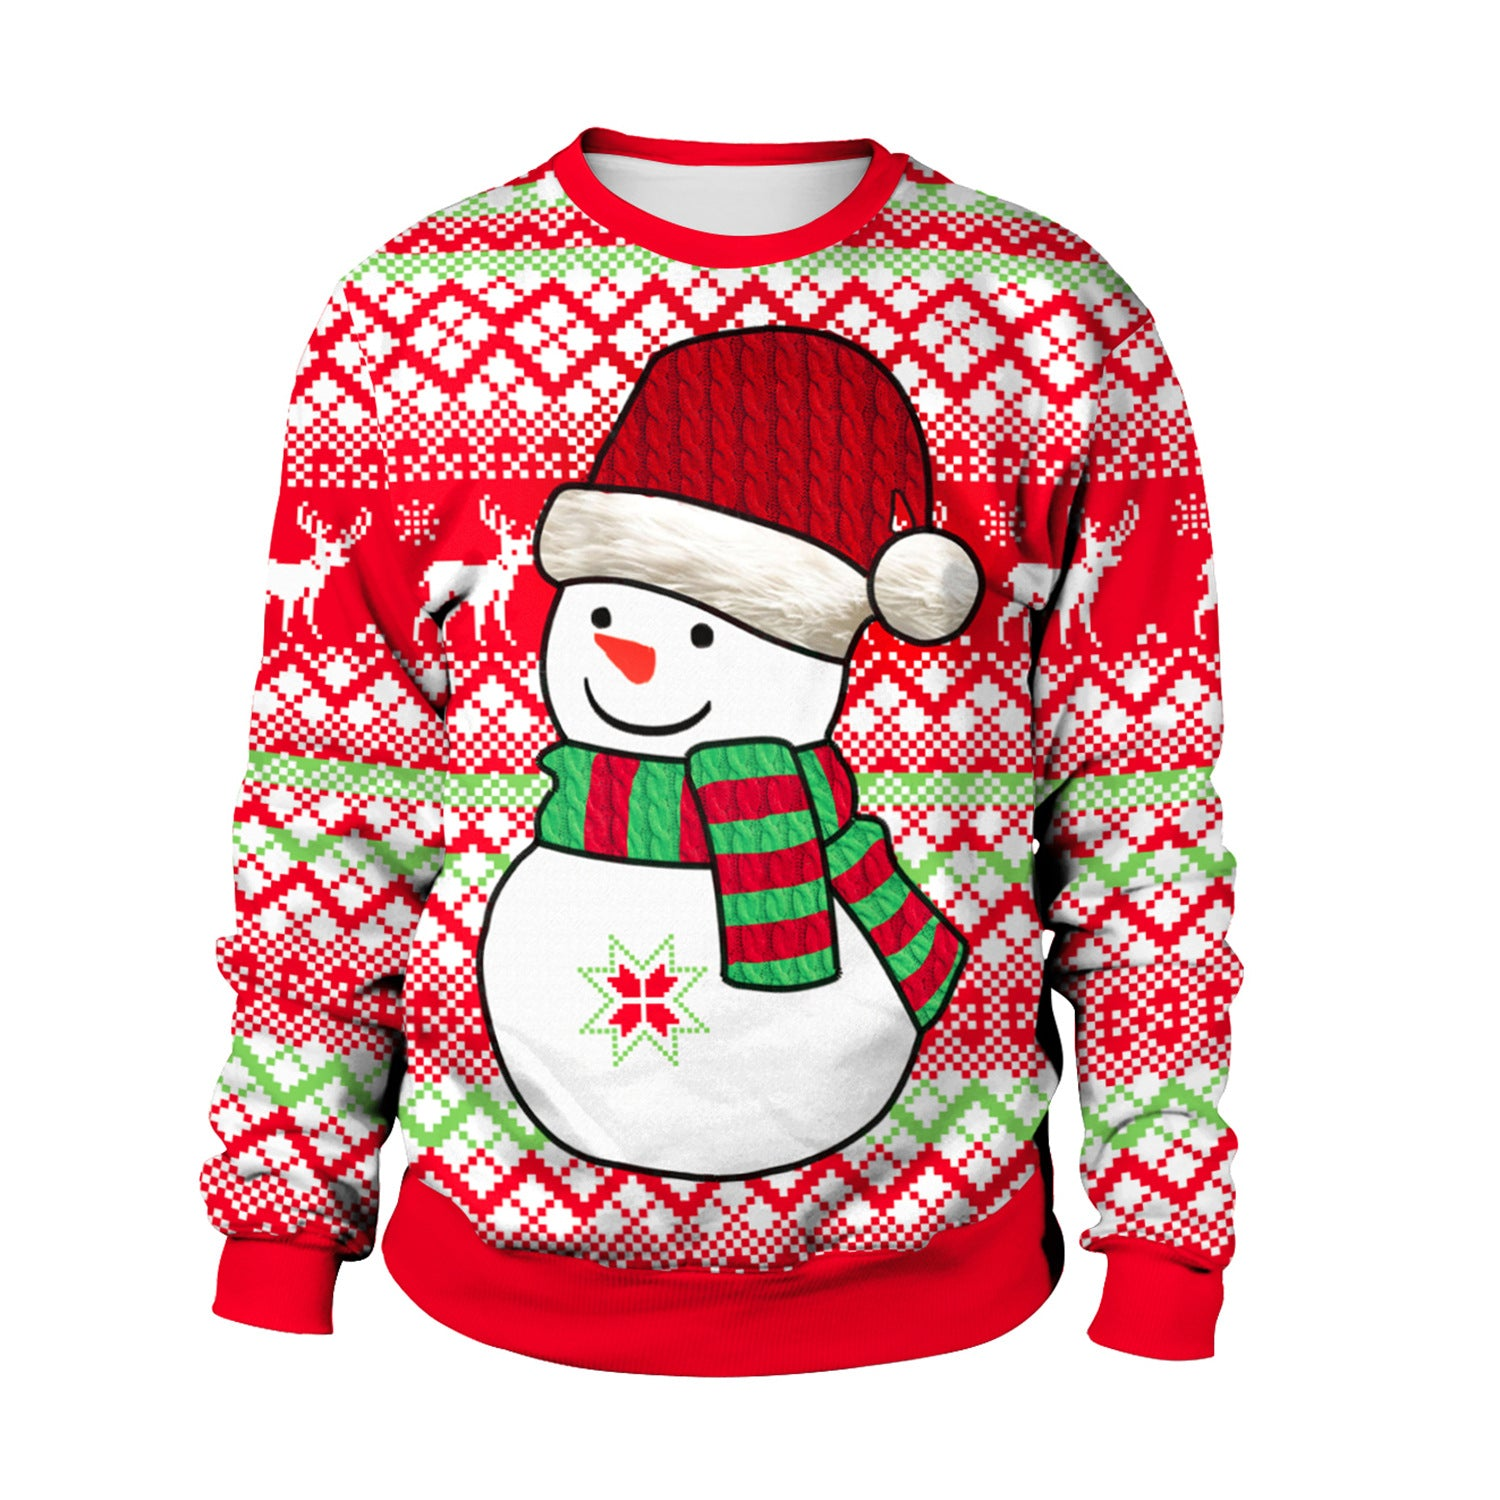 Christmas Snowman Print Round Neck Long Sleeve Sweatshirt Sweater For Women